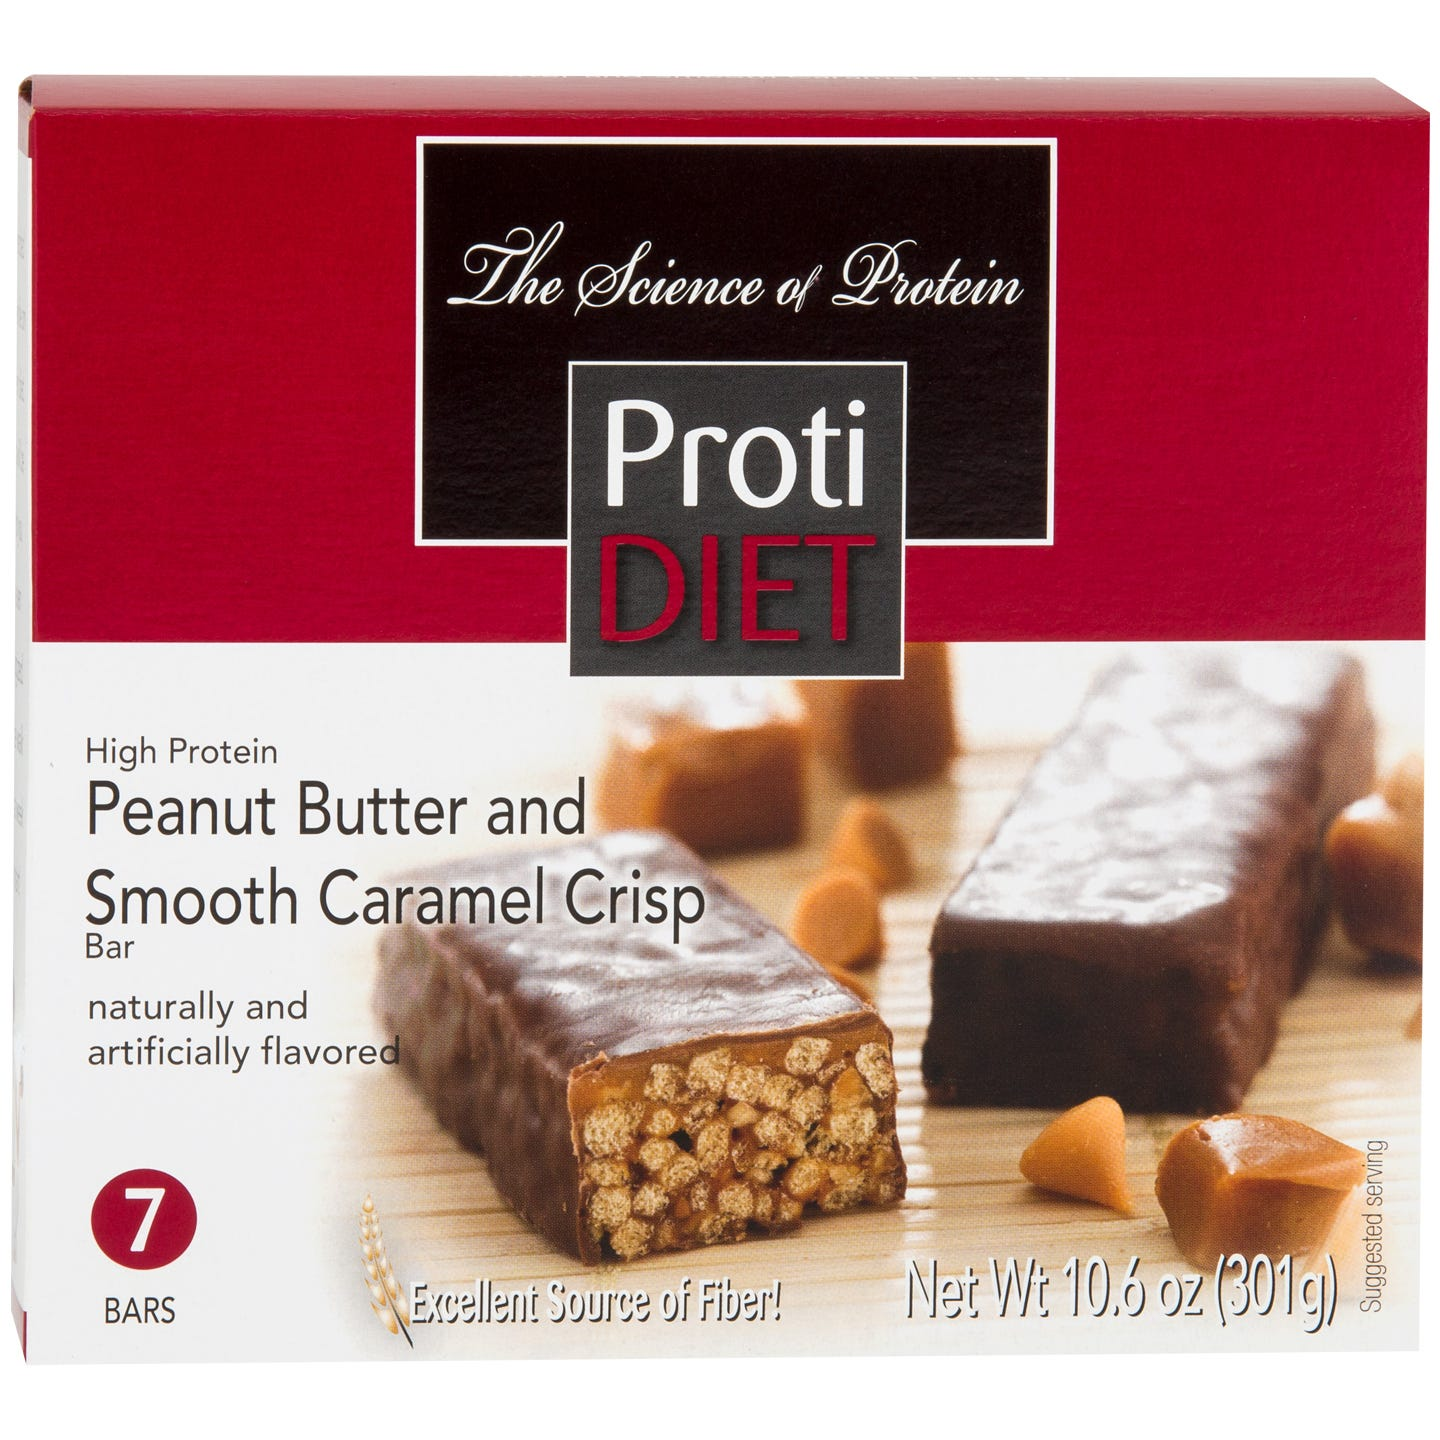 High Protein Fiber Bars Peanut Butter and Smooth Caramel Crisp (7 Ct) - ProtiDiet